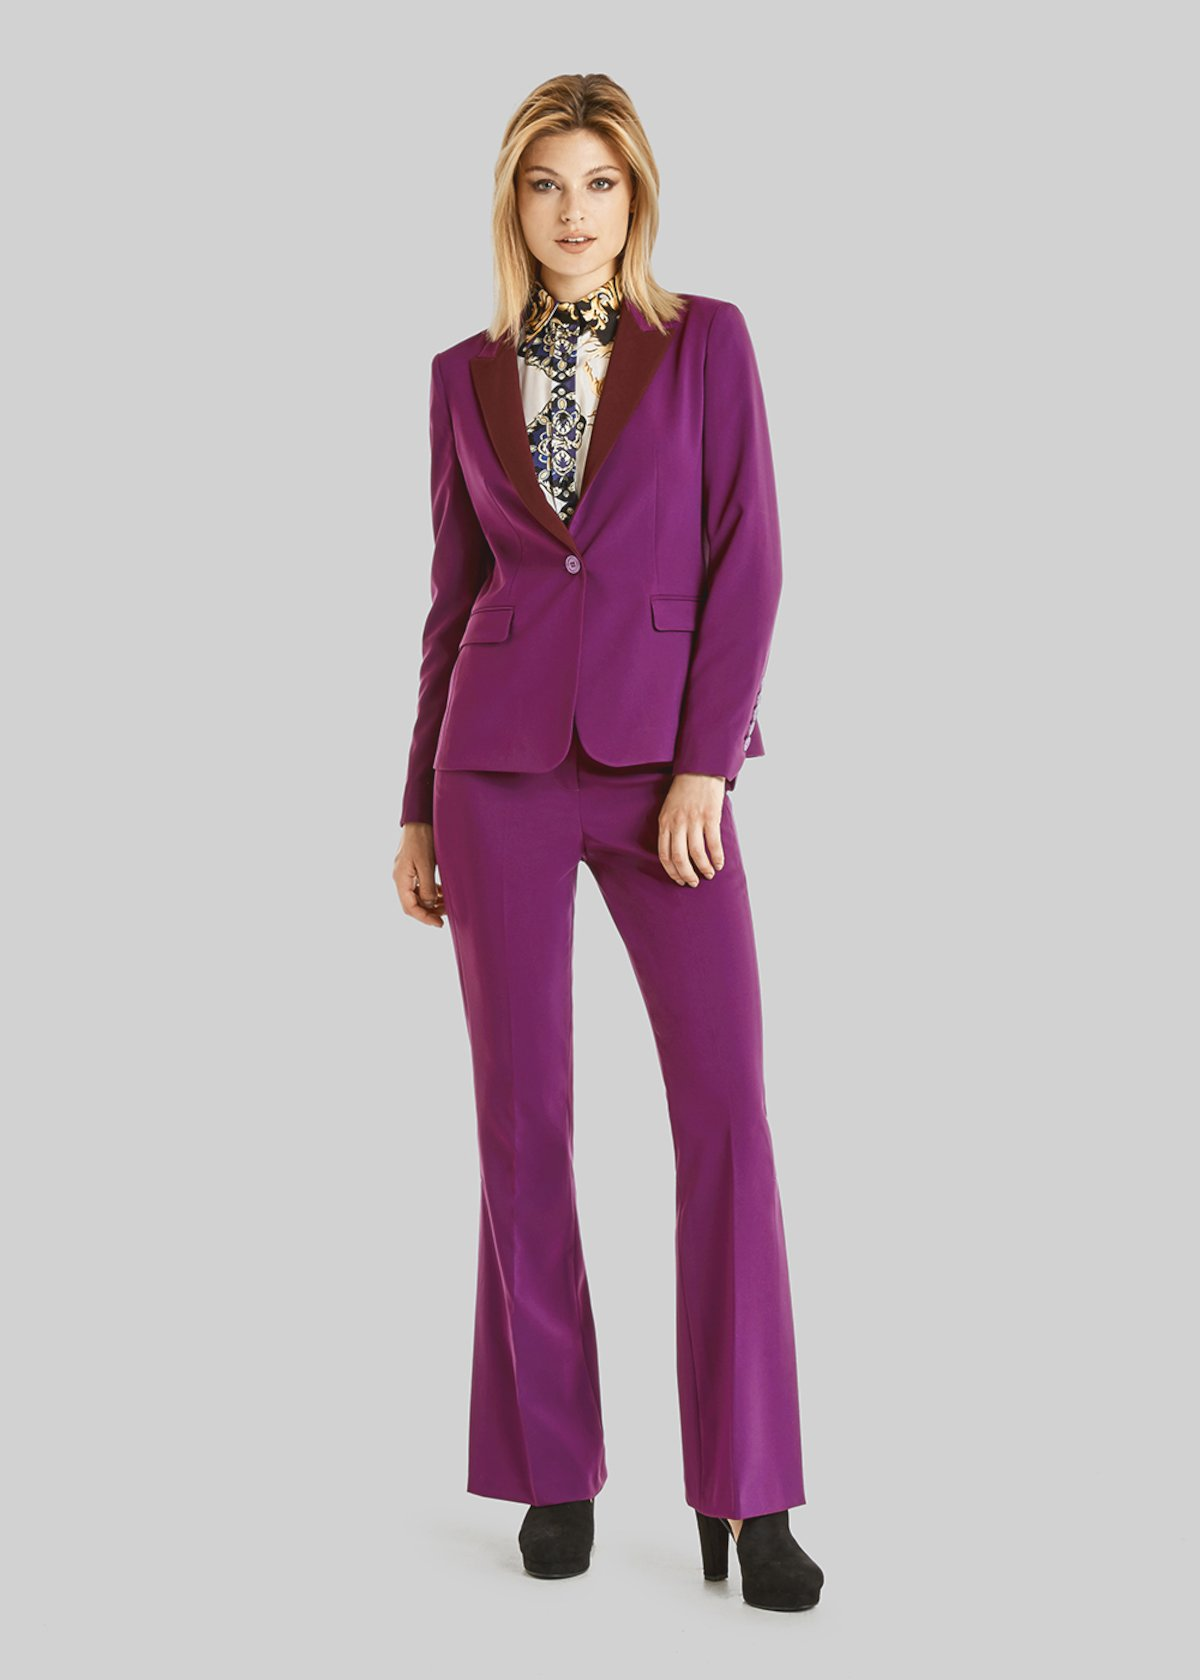 Gilda jacket of technical fabric with bicolor lapels and single button